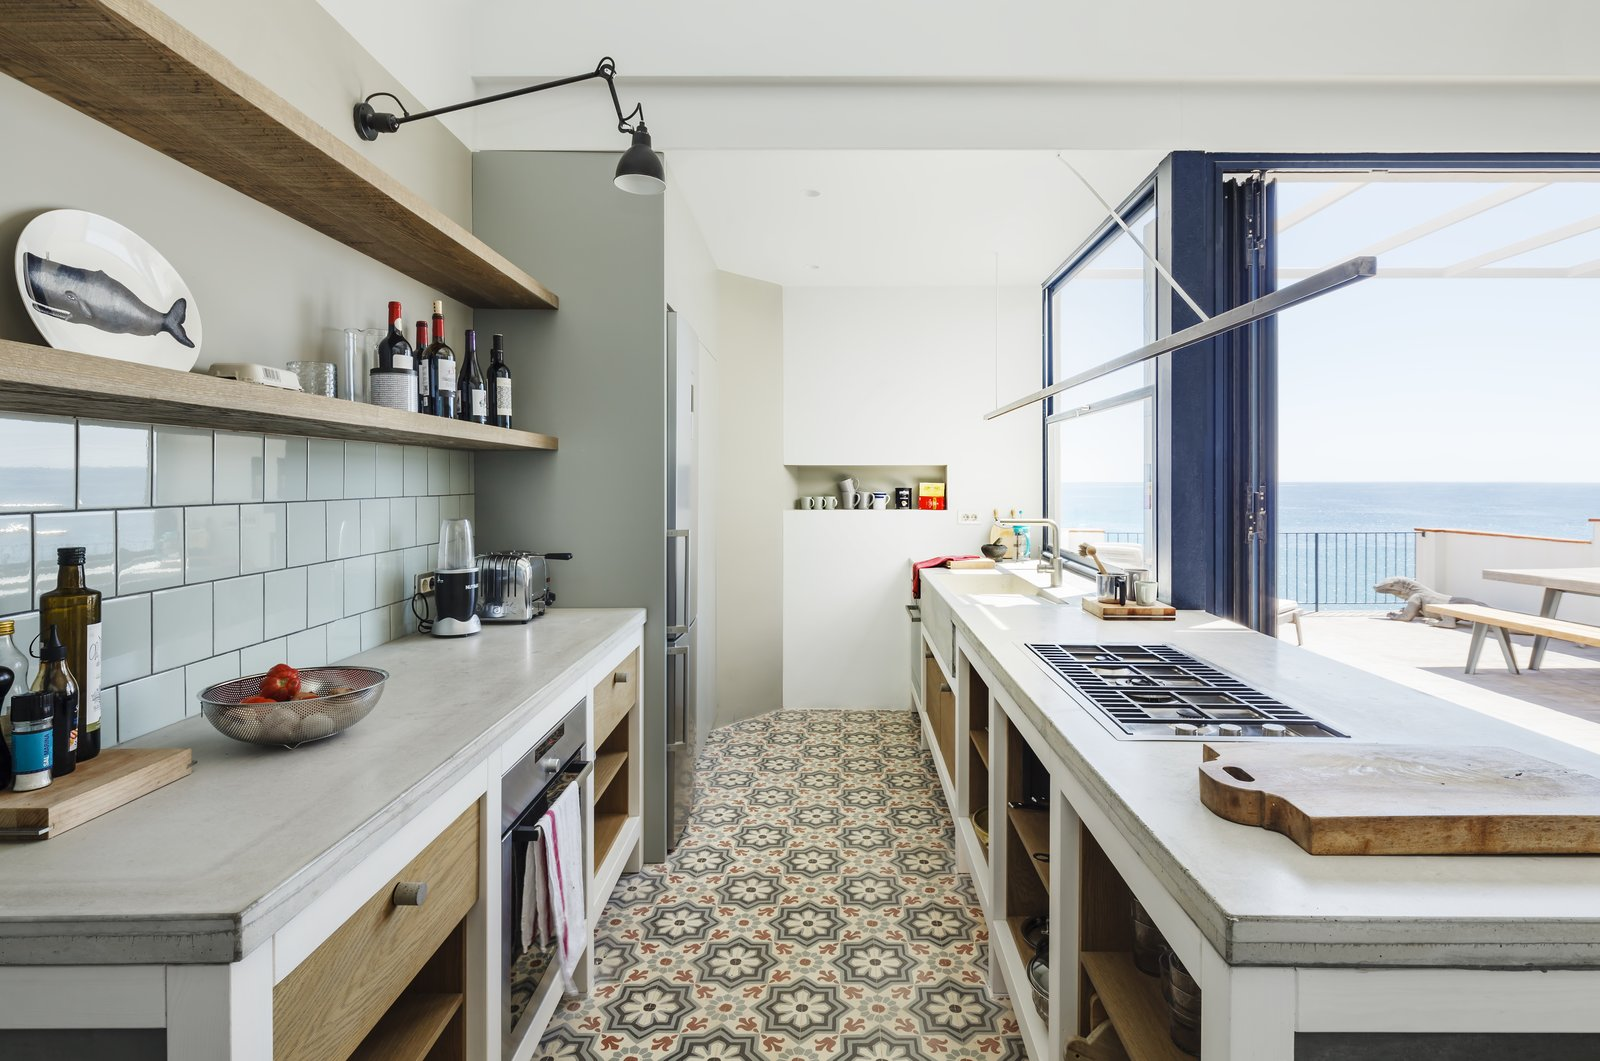 Kitchen, Concrete Counter, Ceramic Tile Floor, Refrigerator, Wall Oven, Porcelain Tile Backsplashe, Wall Lighting, Range, and Drop In Sink  Es Garbi Beach House from A Careful Renovation Brings New Life to a Family's Heritage Home on the Spanish Coast